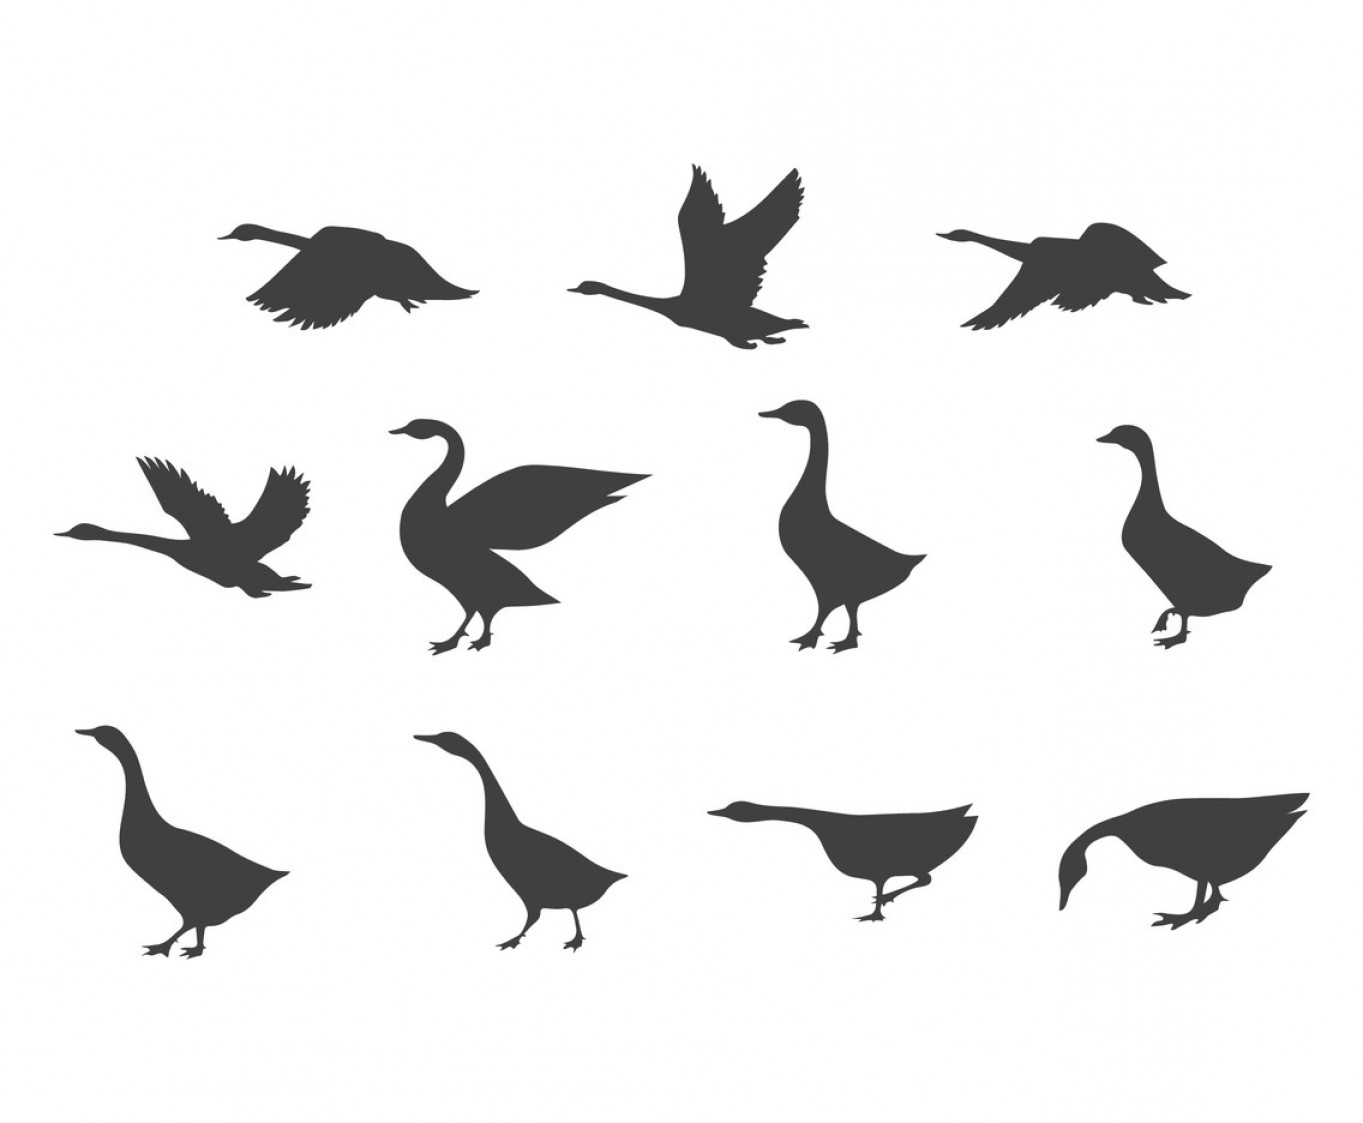 Swan Silhouette Vector: Vector Set Of Swan Silhouettes